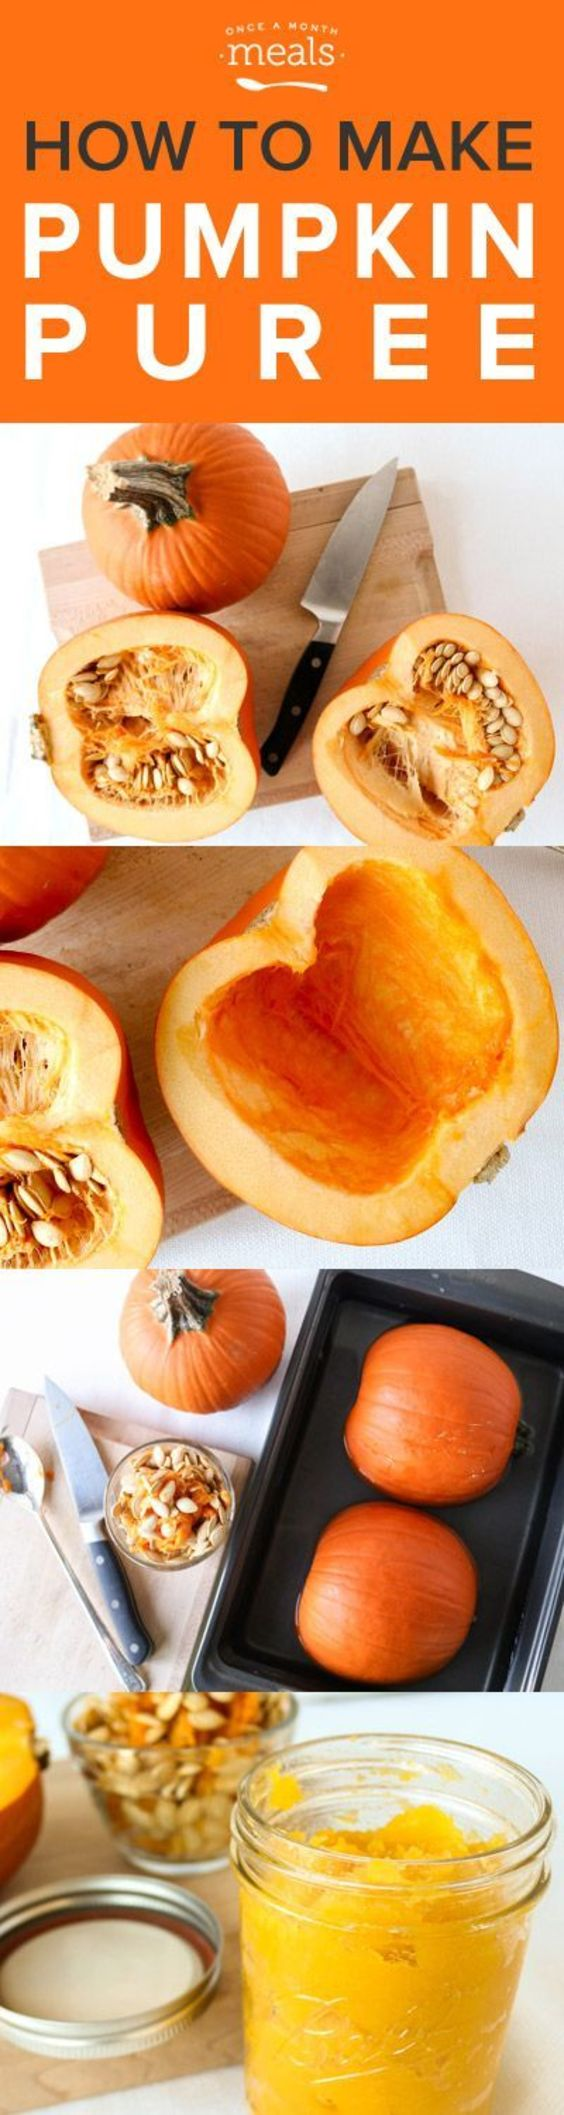 It is so simple and inexpensive to make your own pumpkin puree. Stock up at your local market or pumpkin patch while they are in season!